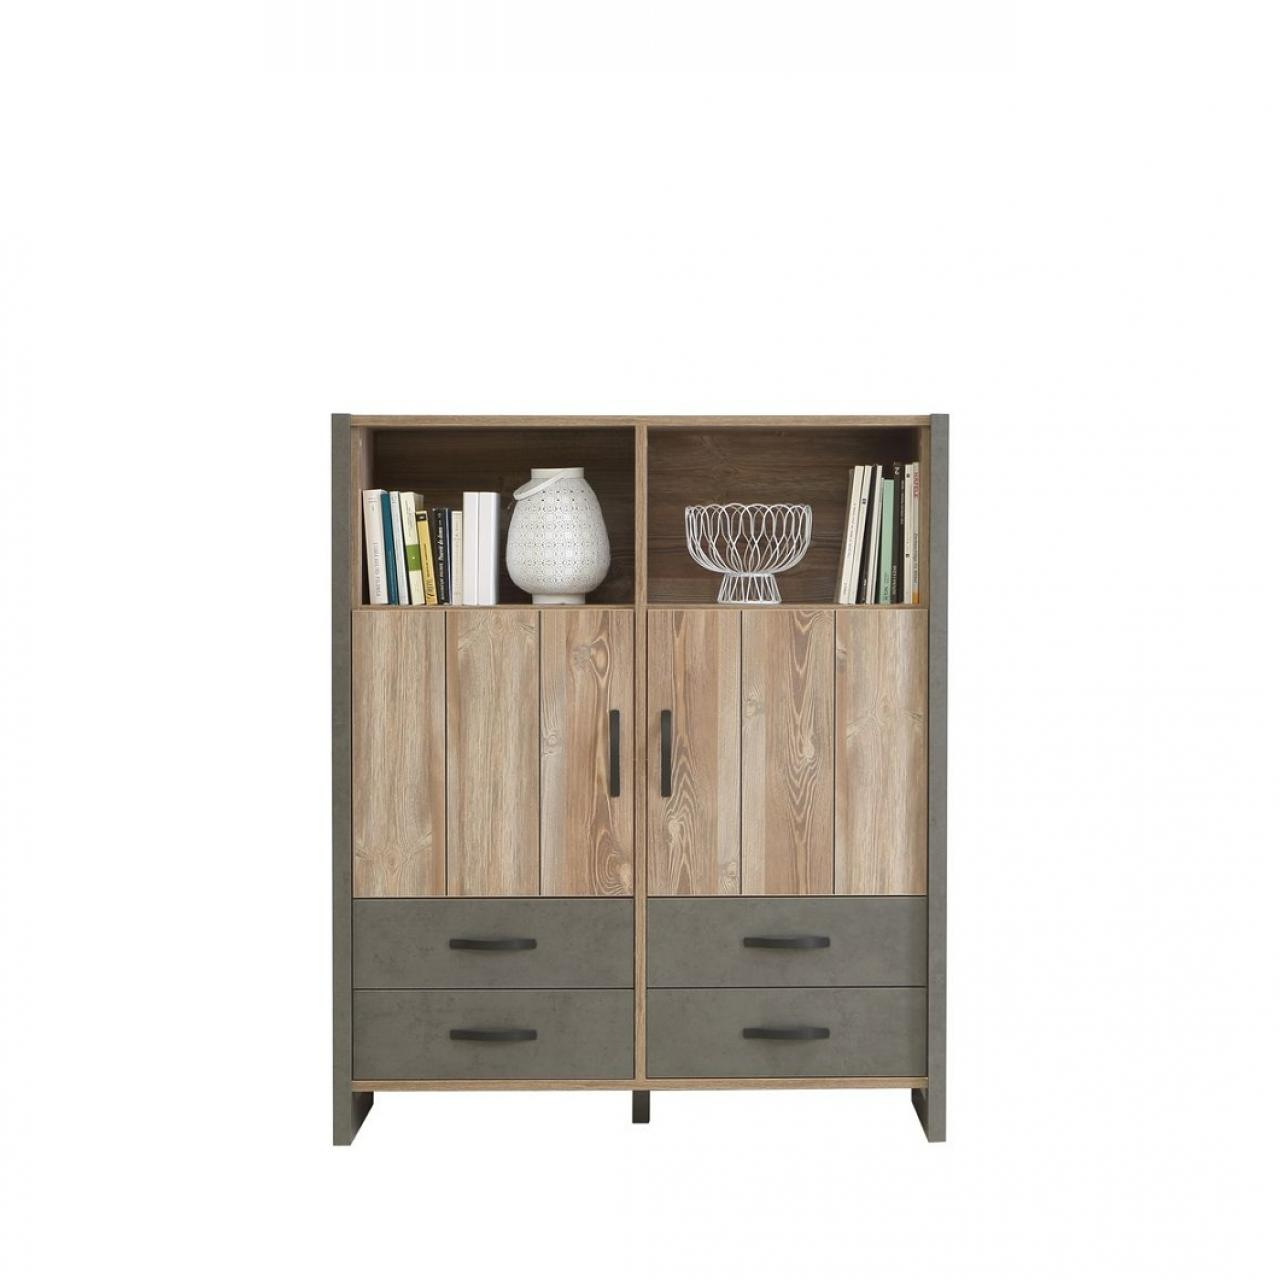 Highboard Note - Beton/Picea Kiefer